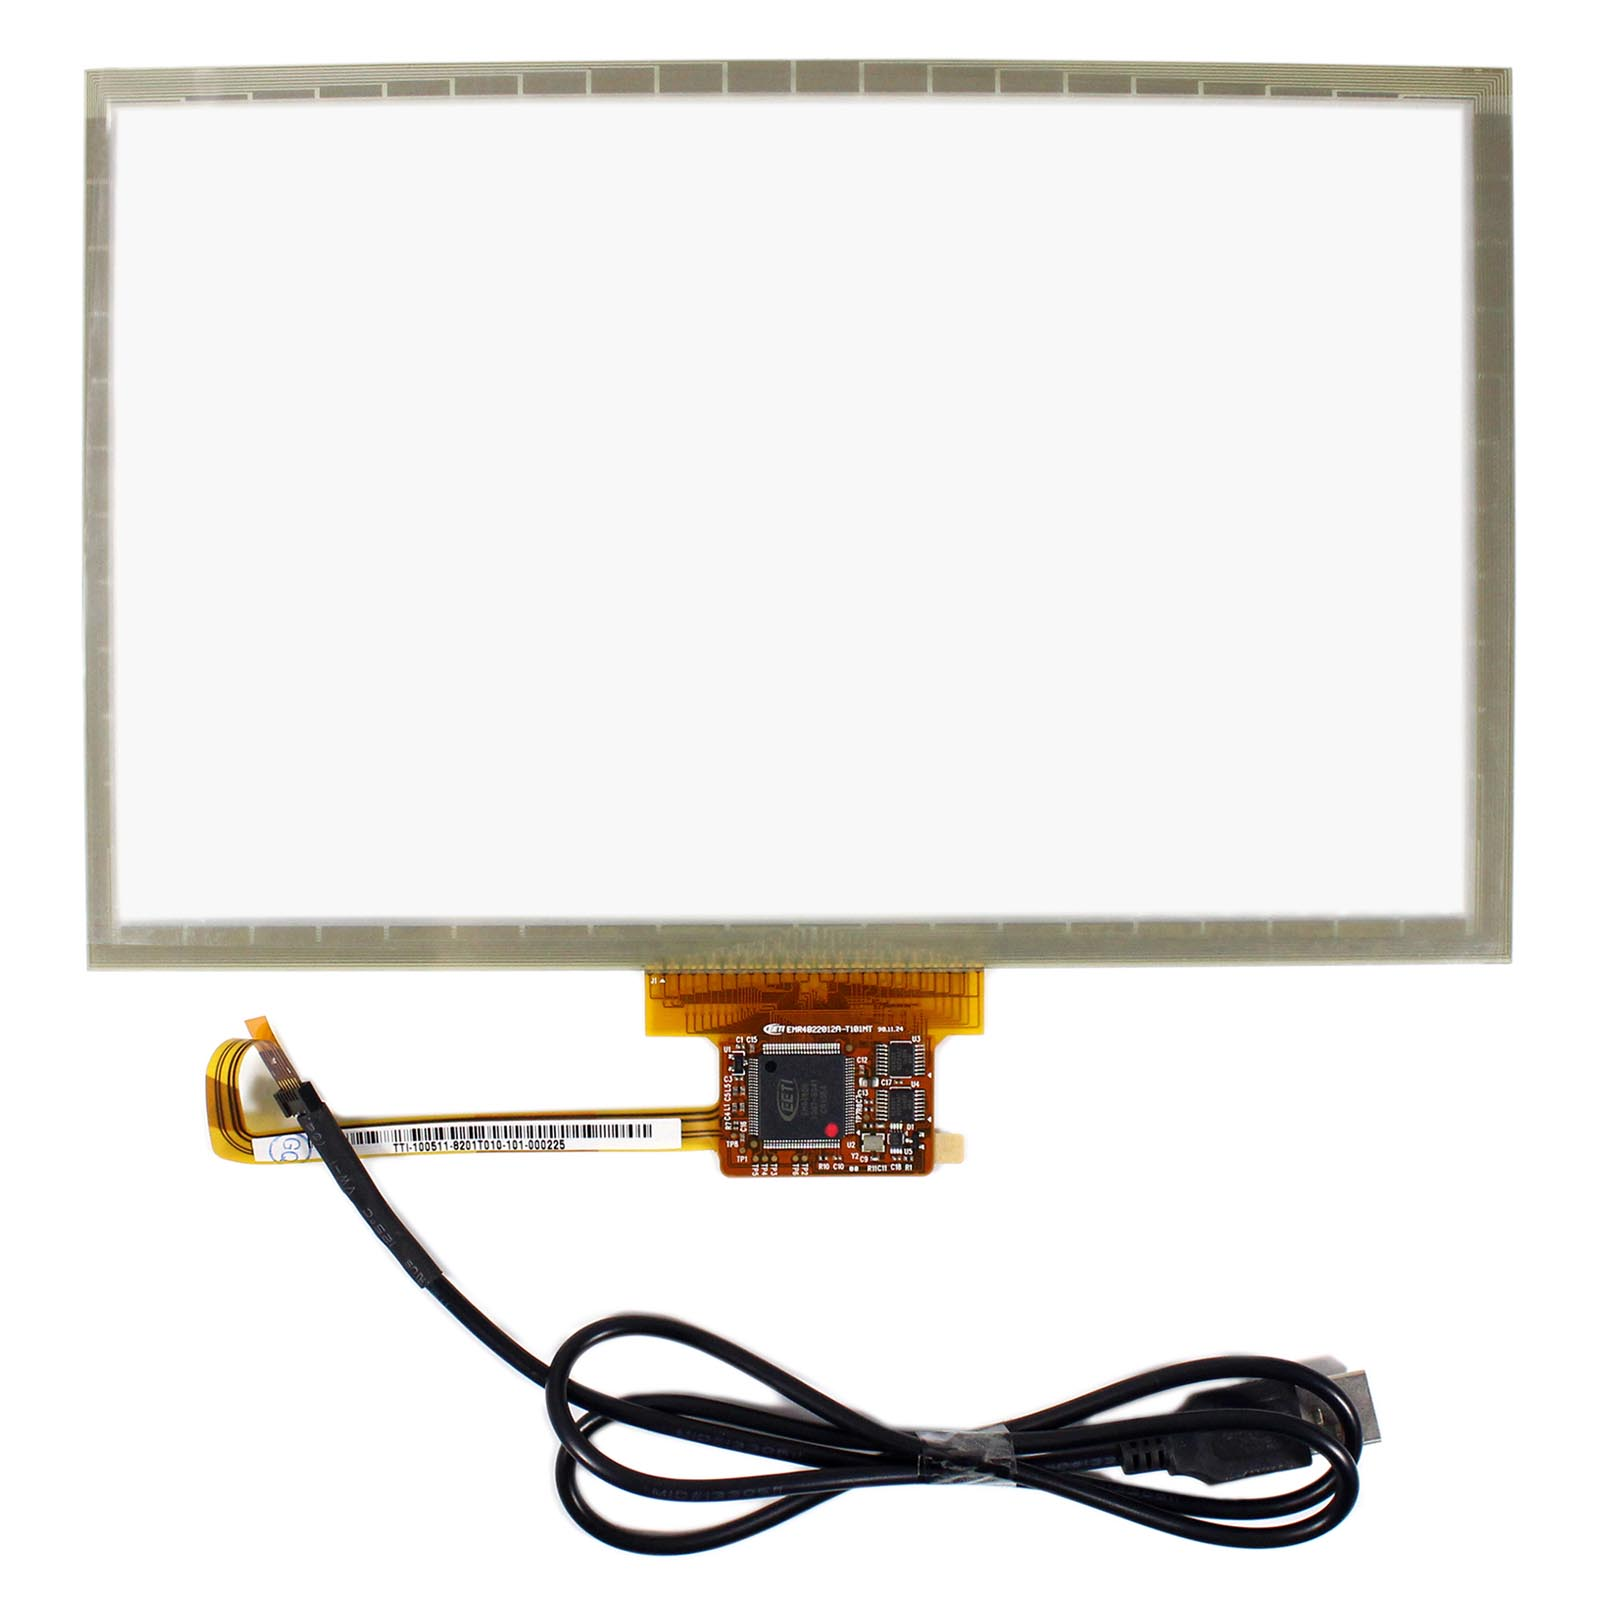 10 2 Capacitive Touch Panel Size 235mm x 145 8mm VS102TP A3 Muti Touch Screen